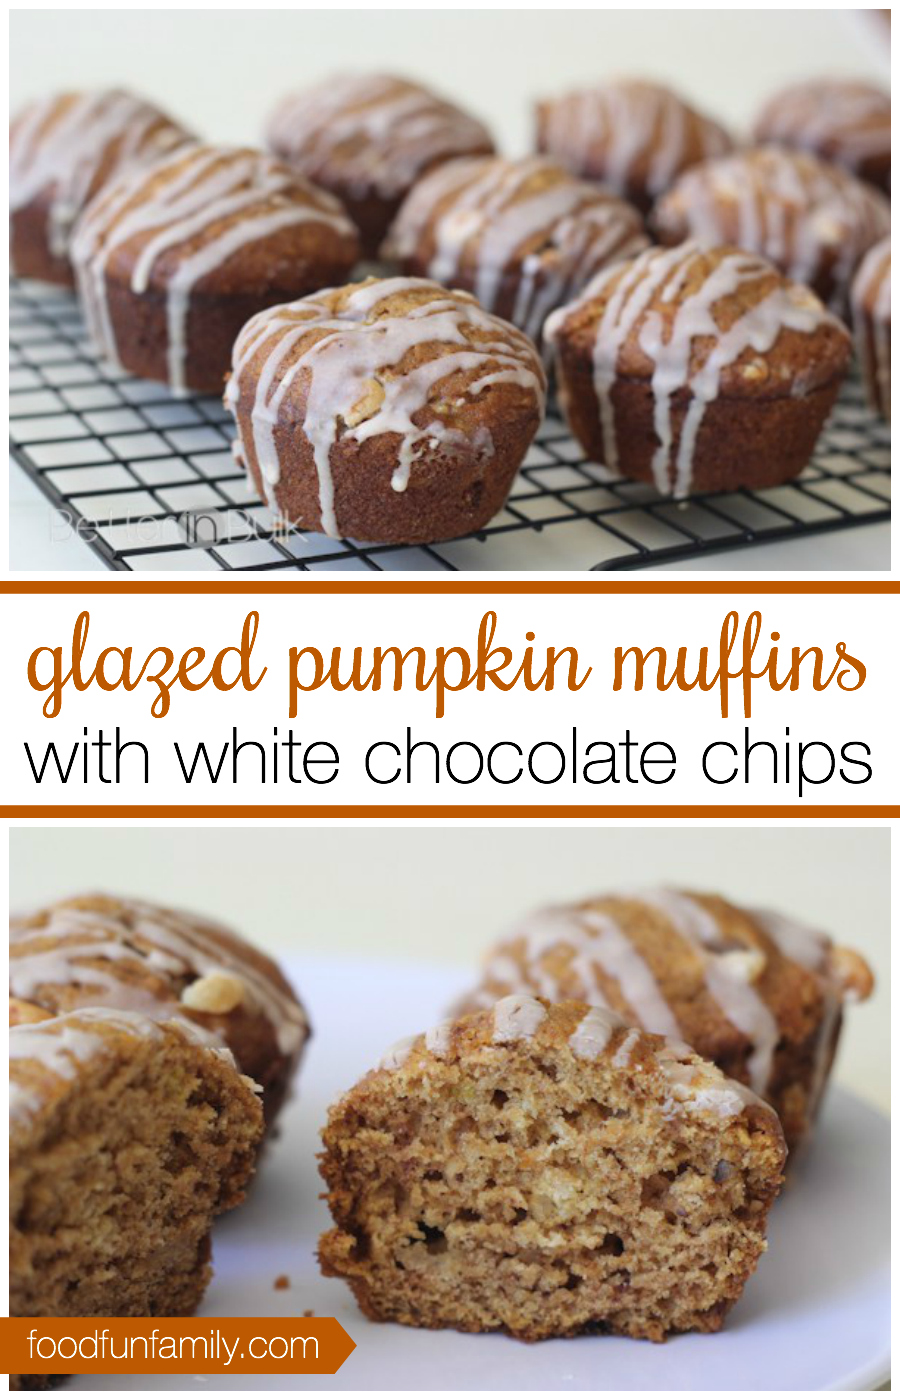 Glazed Pumpkin Muffins with White Chocolate Chips - Better in Bulk